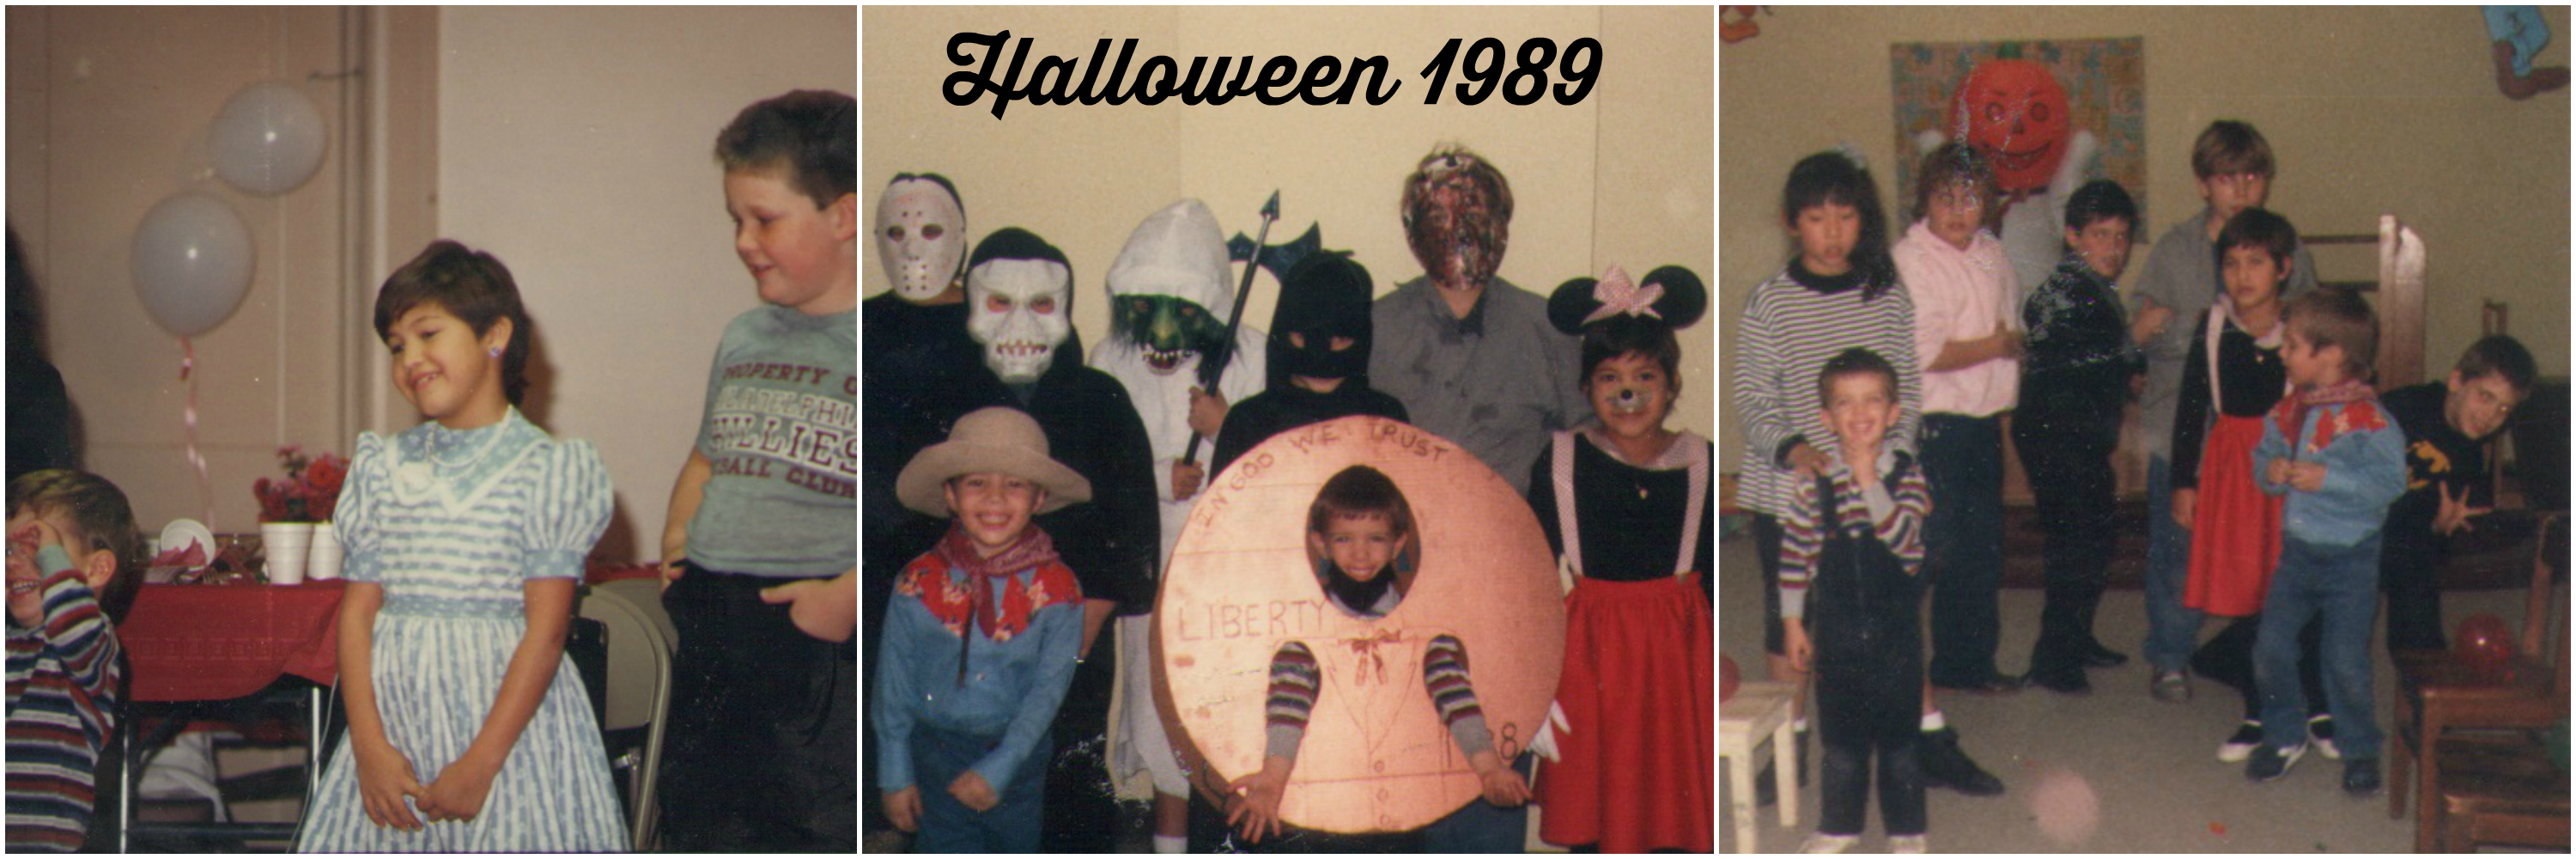 Halloween 1989 collage text